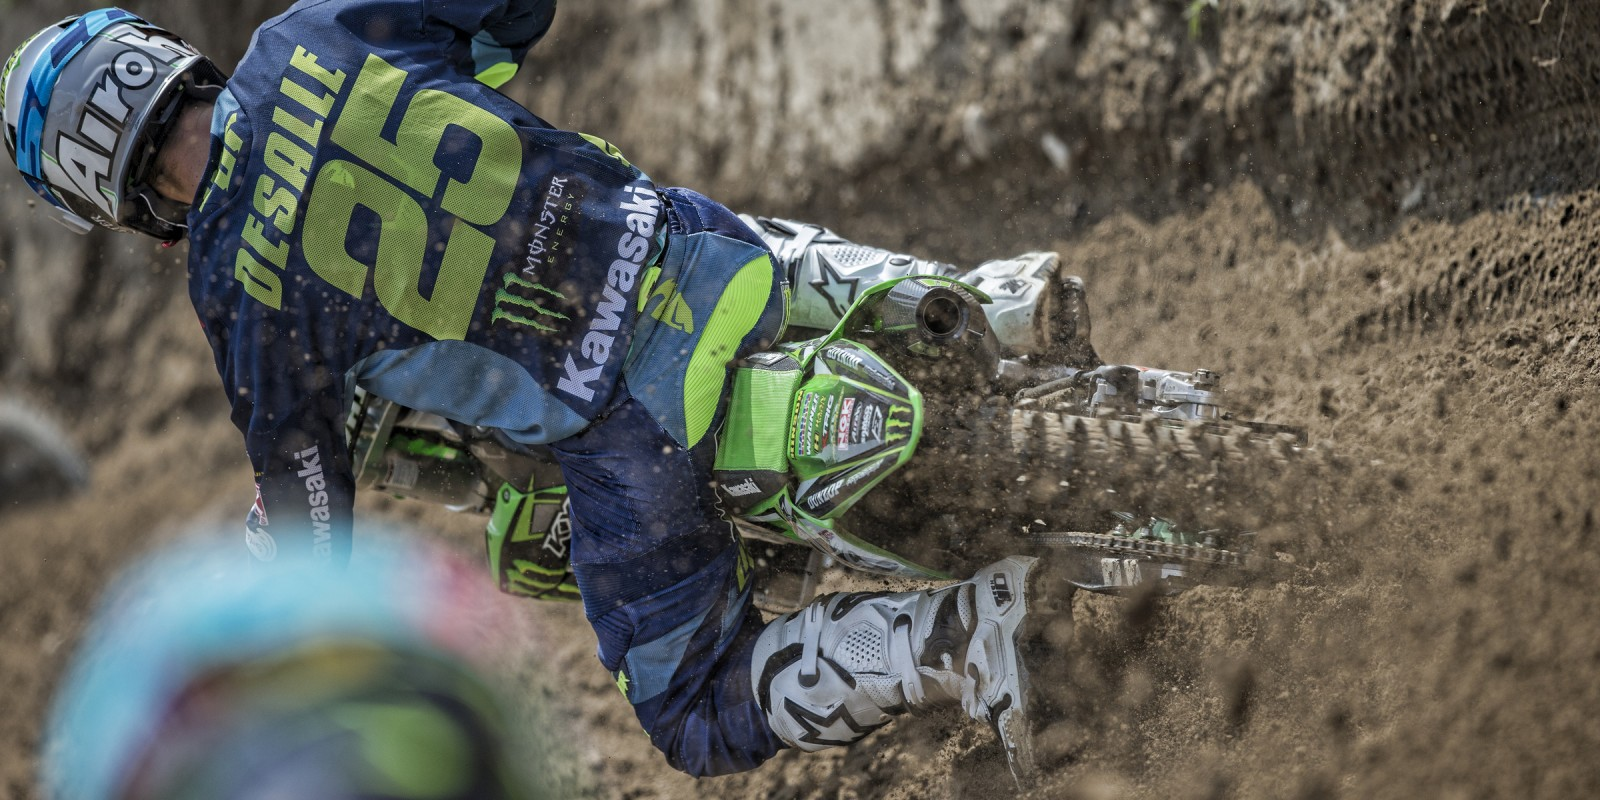 Clement Desalle at the 2016 MXGP of Lombardia